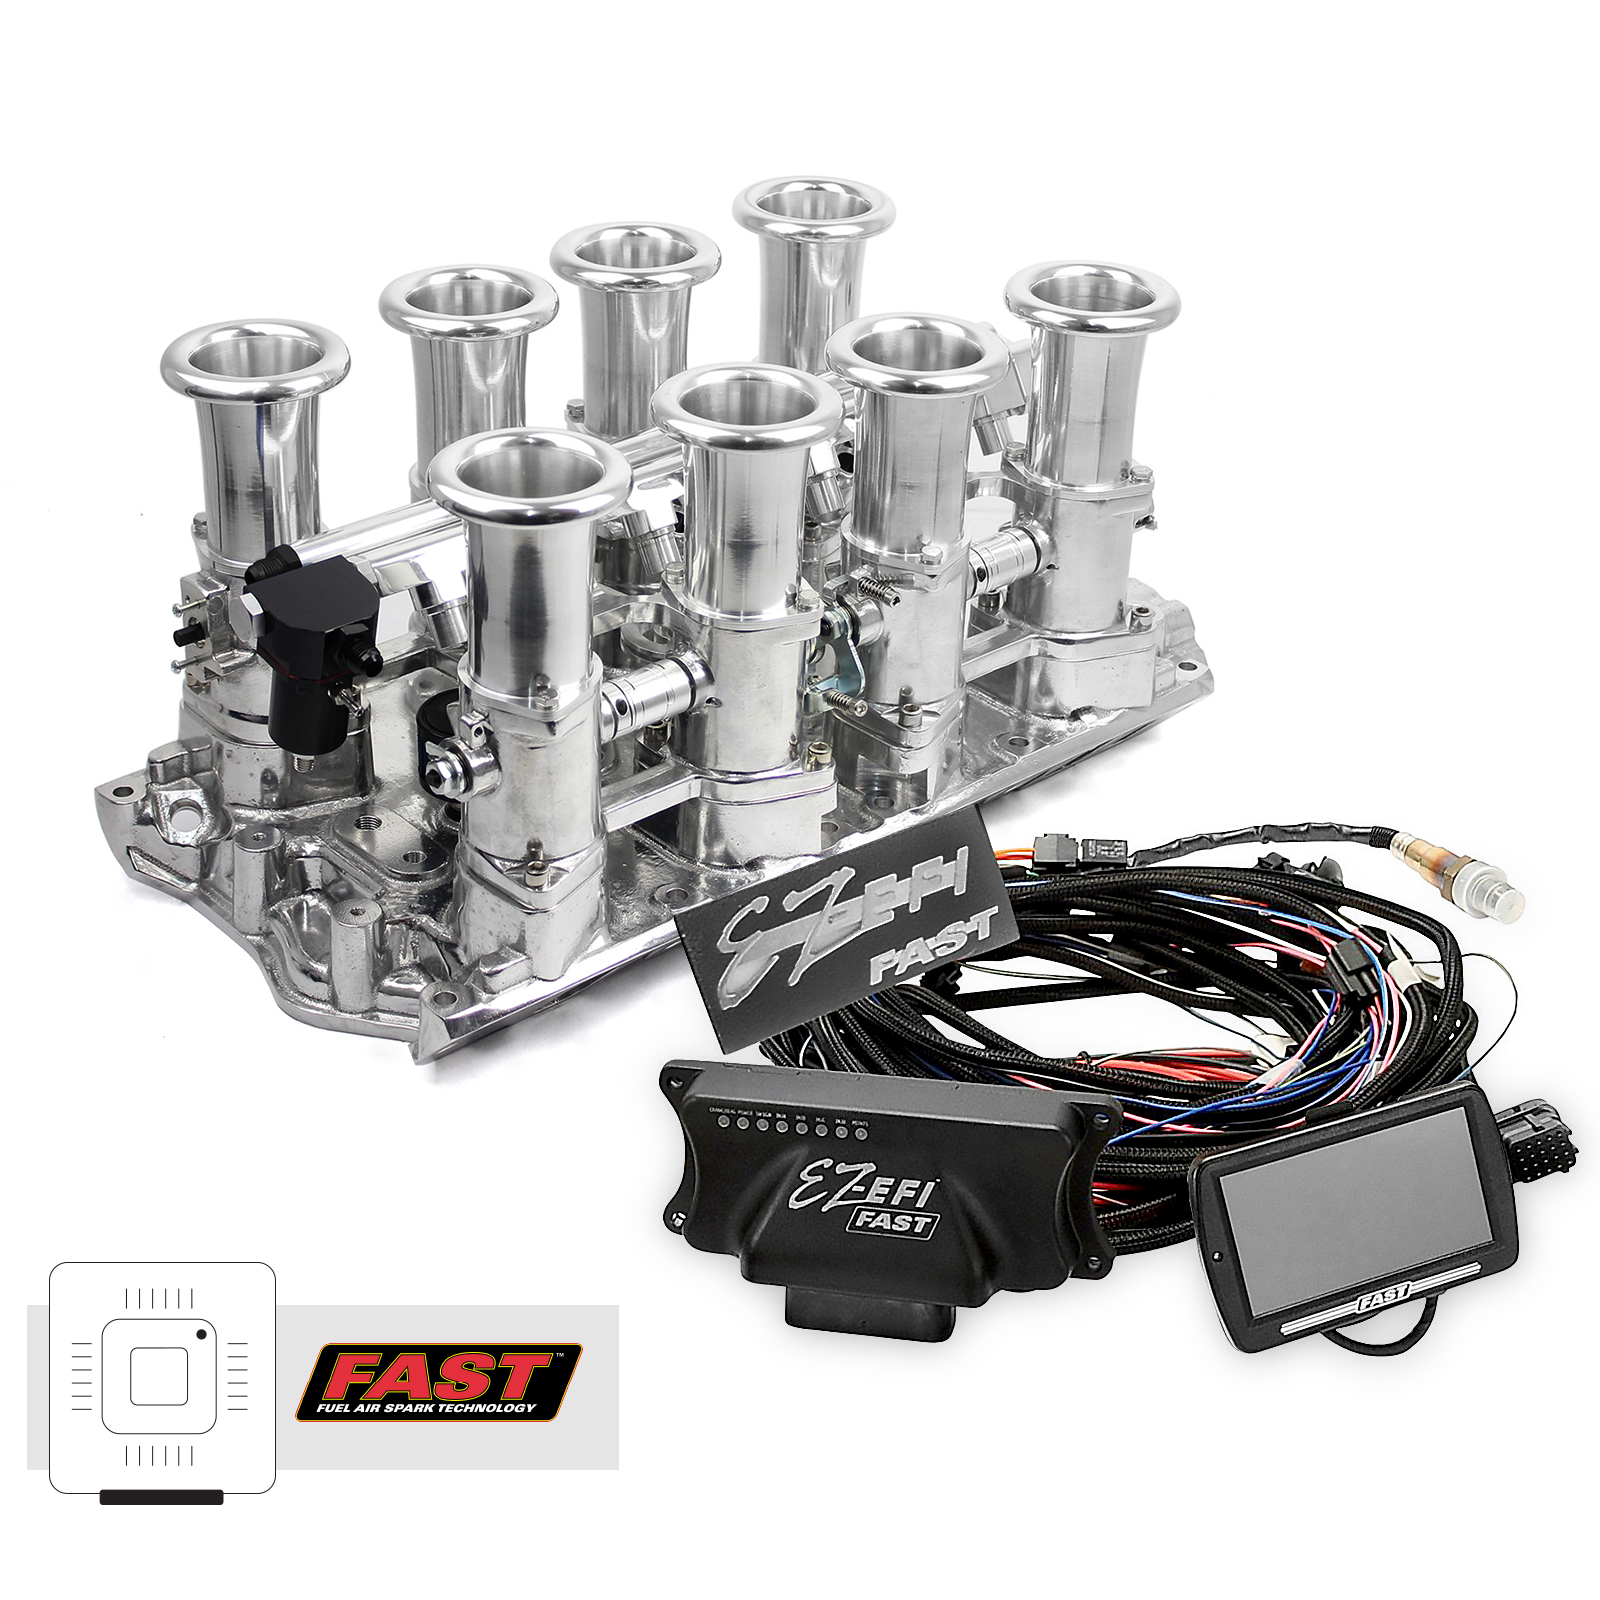 Ford 351W Windsor Downdraft + FAST EZ-EFI 2.0 Fuel Injection System - Polished